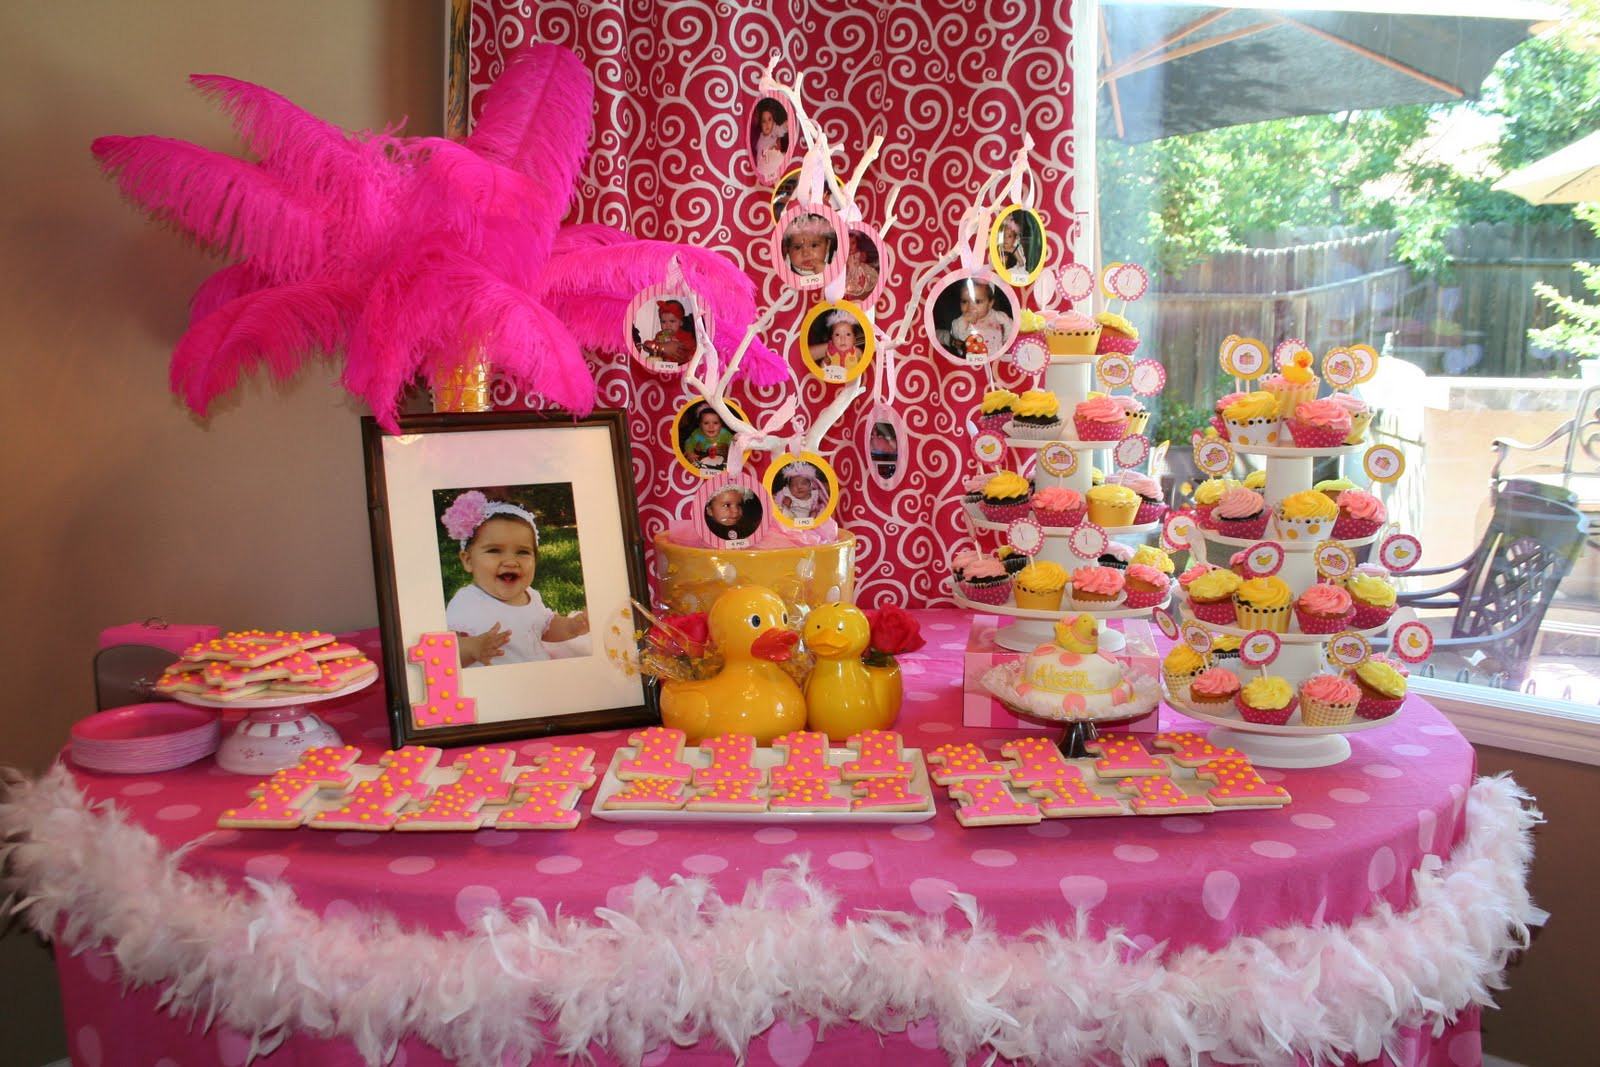 Best ideas about First Birthday Party Decorations . Save or Pin 35 Cute 1st Birthday Party Ideas For Girls Now.